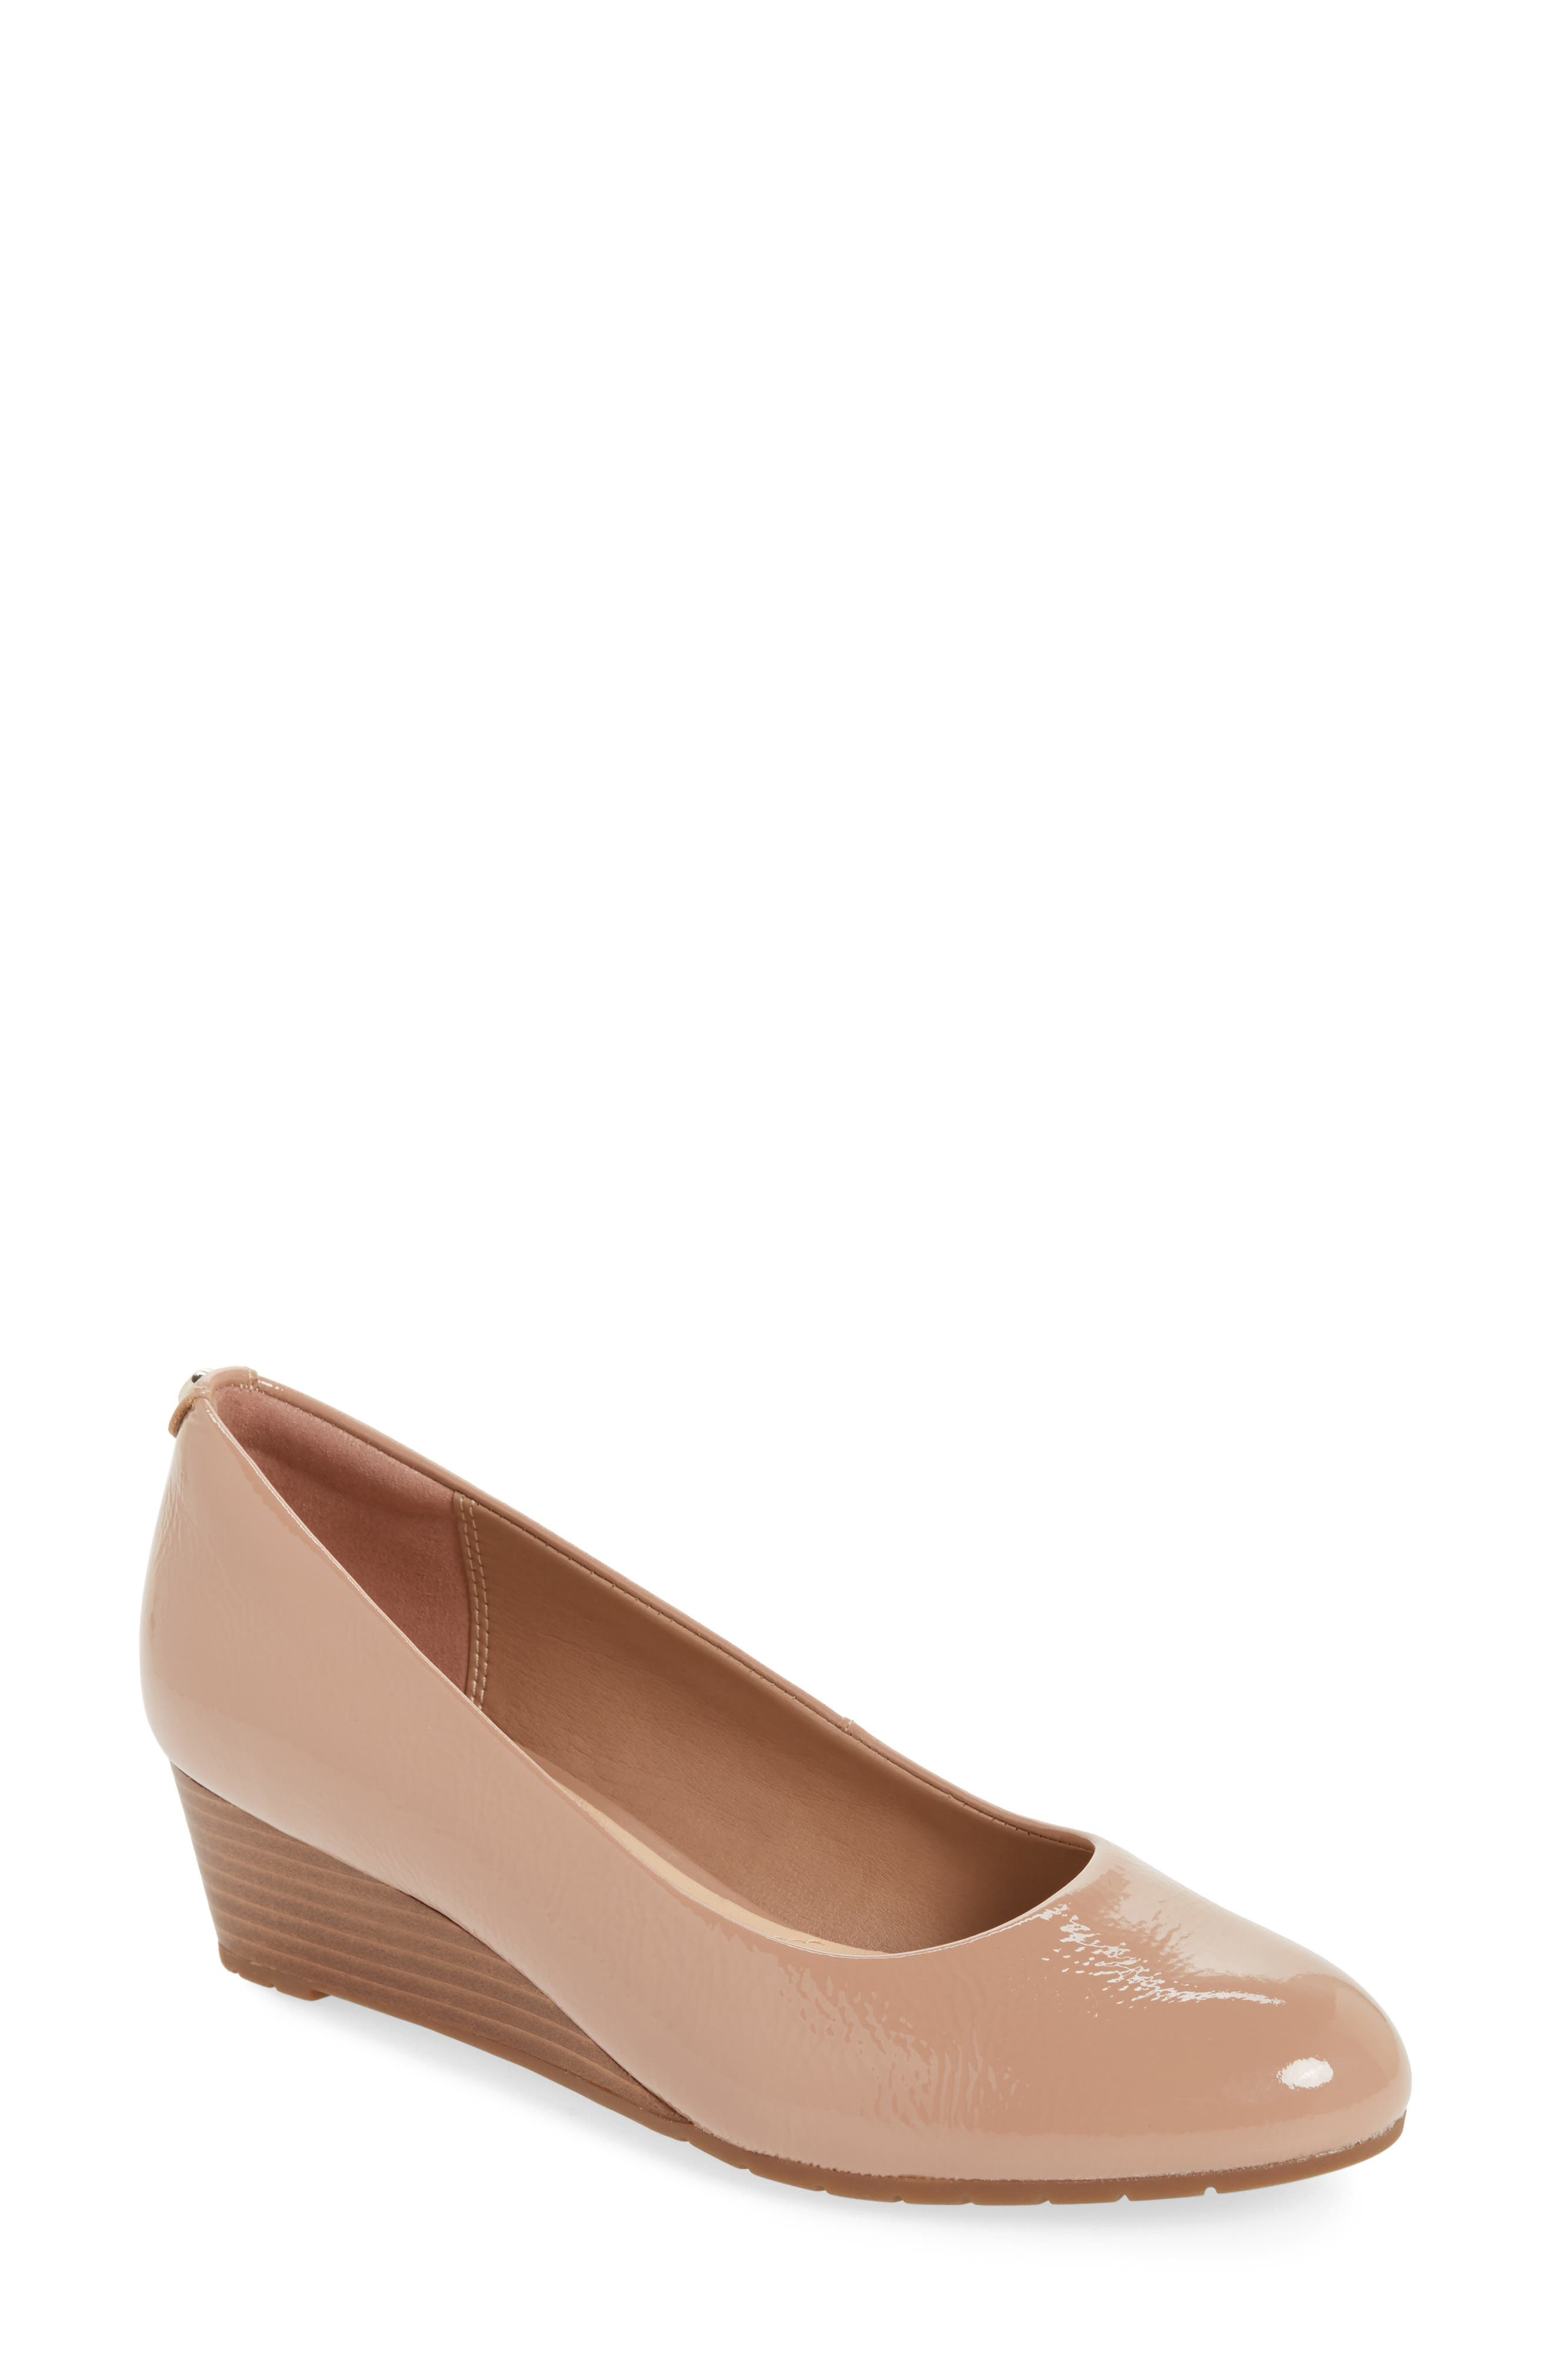 Vendra Bloom Wedge Pump,                             Main thumbnail 1, color,                             Beige Patent Leather